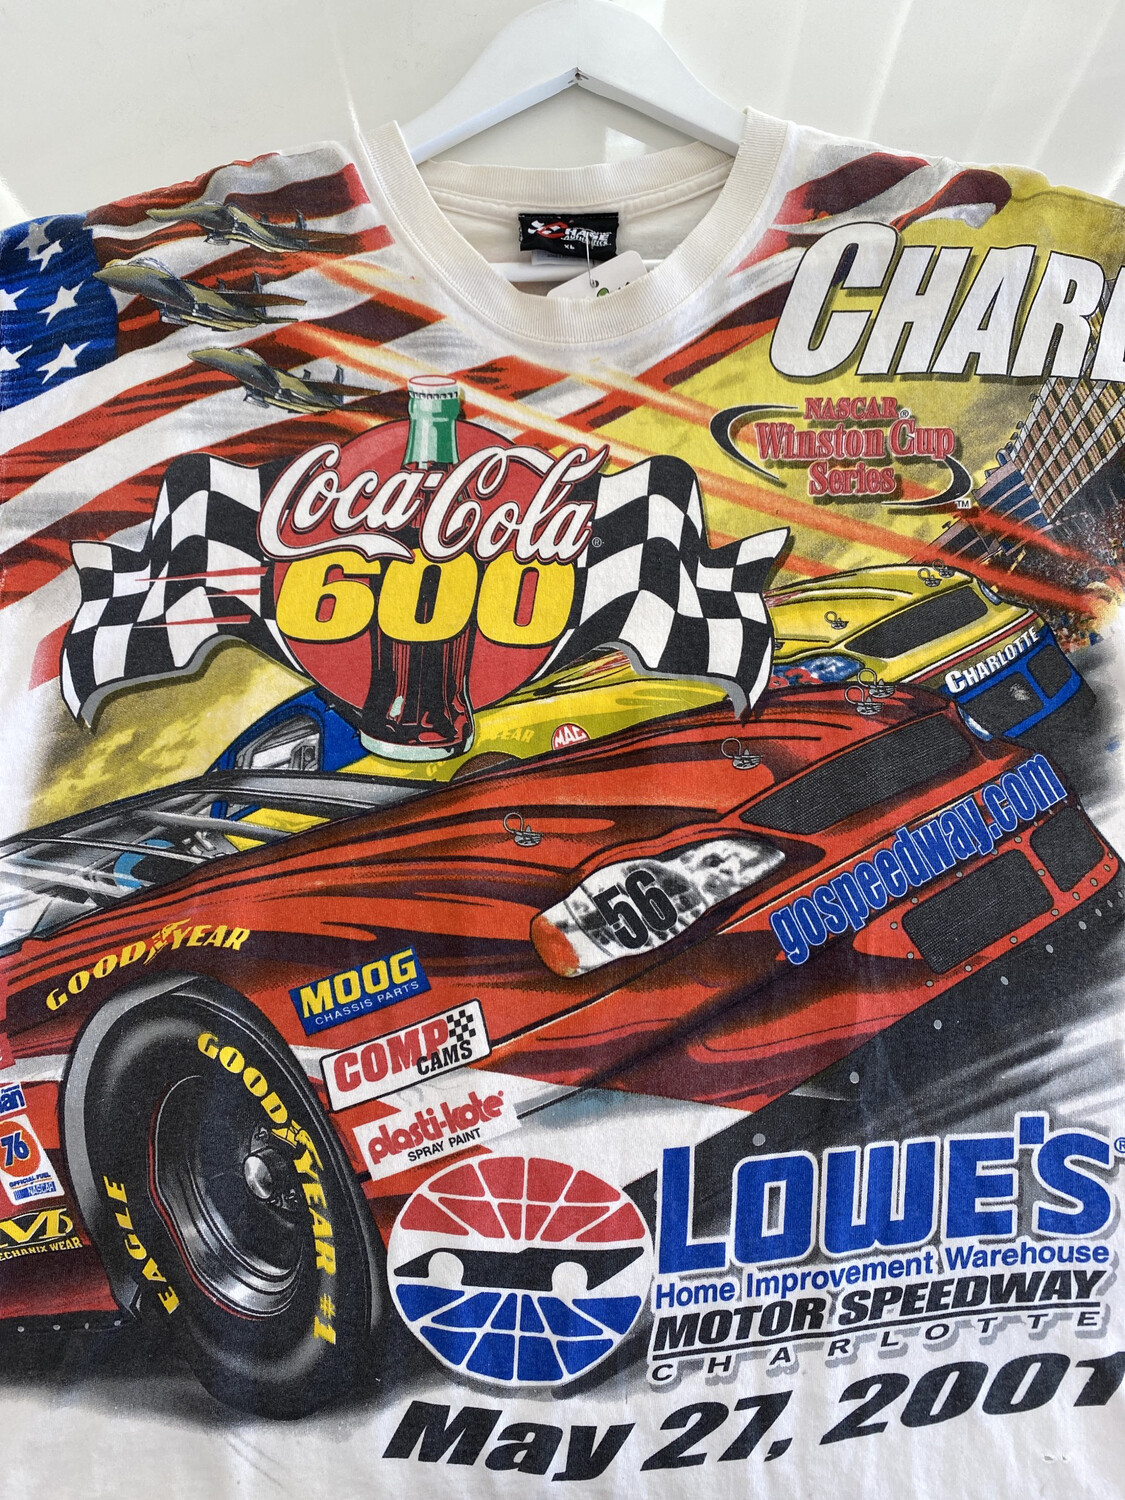 Coca-cola 600 All Over Racing Tee. SIZE: XL